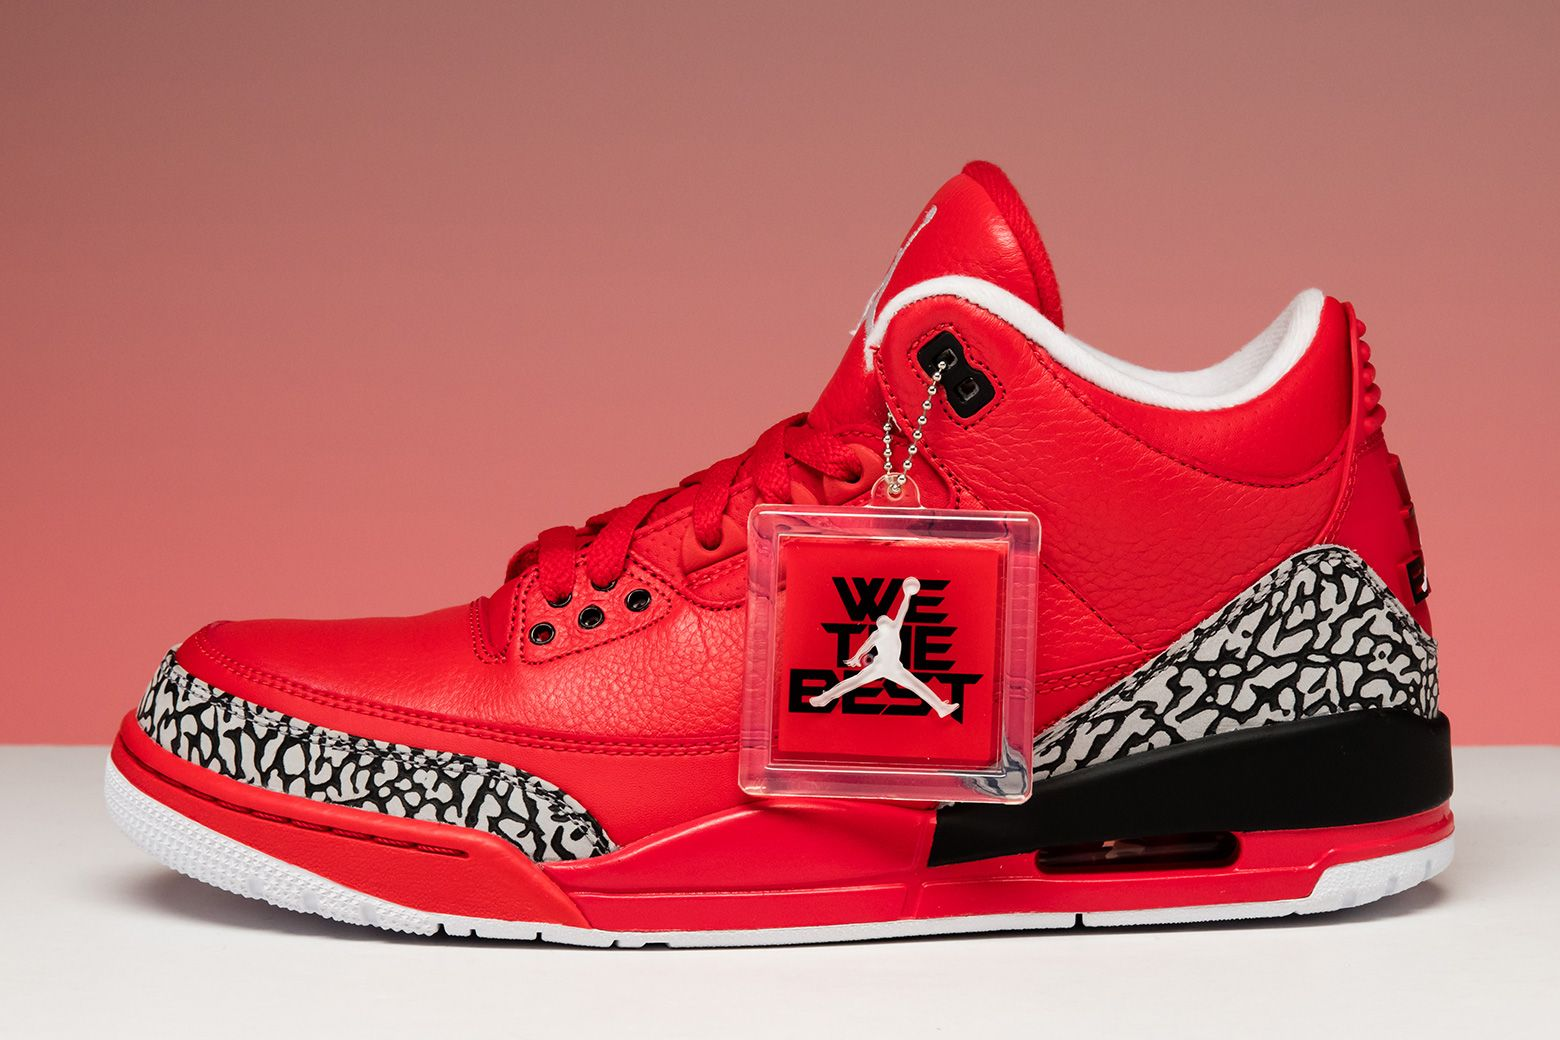 d0e6e46e655 DJ Khaled's Air Jordan 3